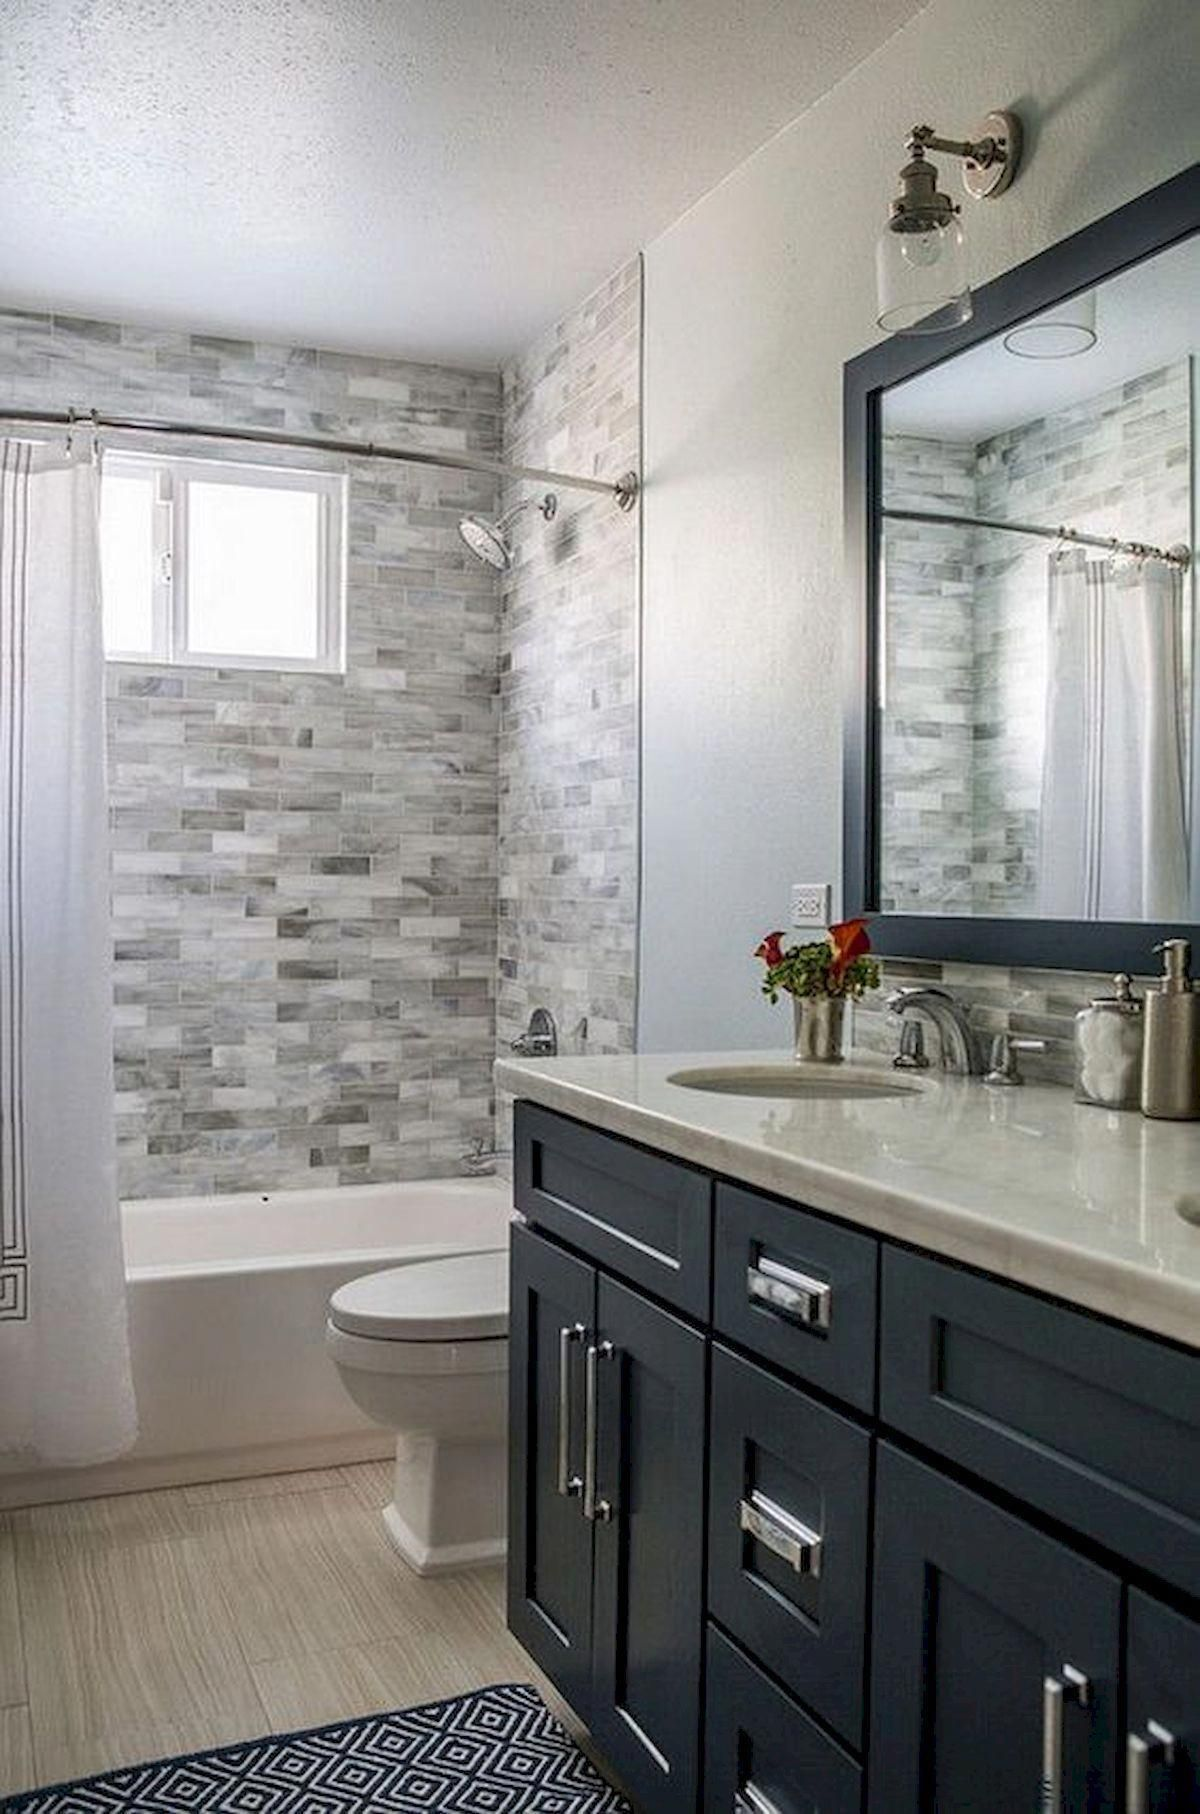 19 Stunning Traditional Bathroom Remodel Houzz Ideas Bathroom Remodel Master Small Bathroom Remodel Small Bathroom Decor